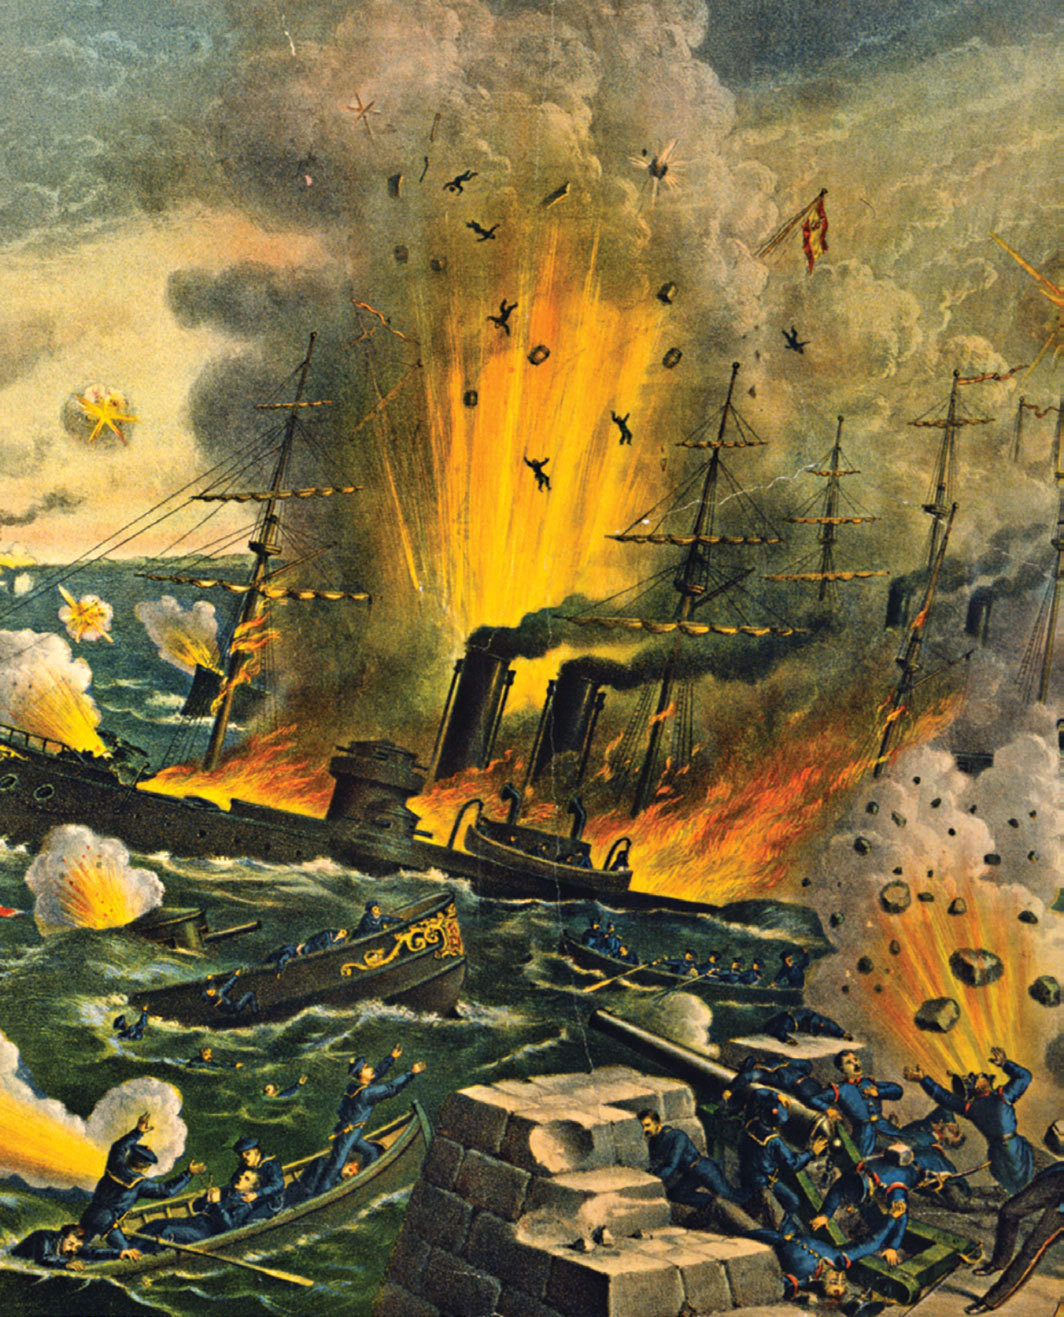 Lithograph detail depicting the Battle of Manila Bay, 1898. Kurz & Allison/Library of Congress